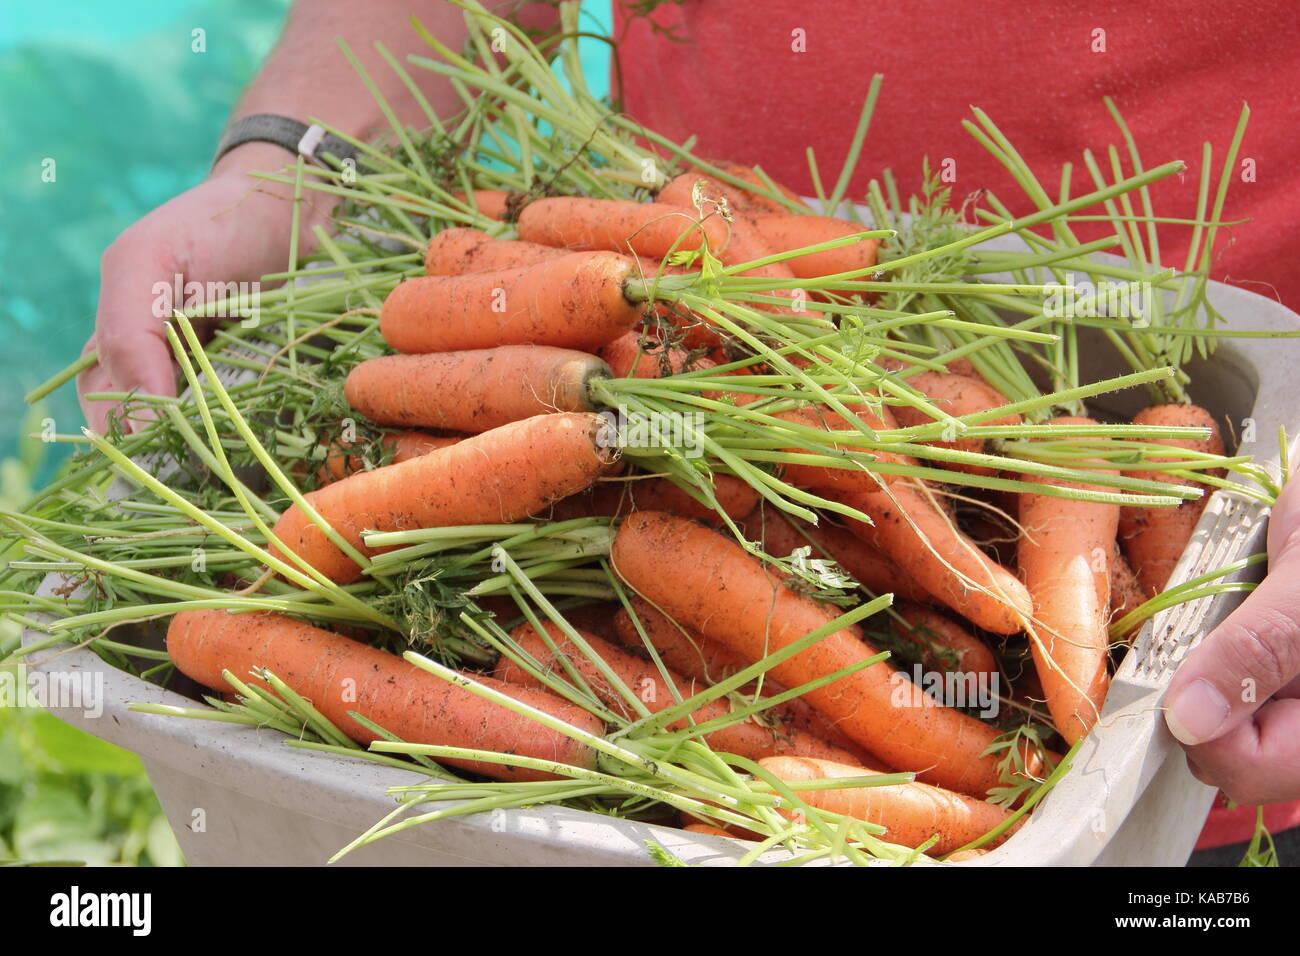 Freshly harvested home grown 'Nairobi' variety carrots are carried by a gardener through an allotment gardens - Stock Image